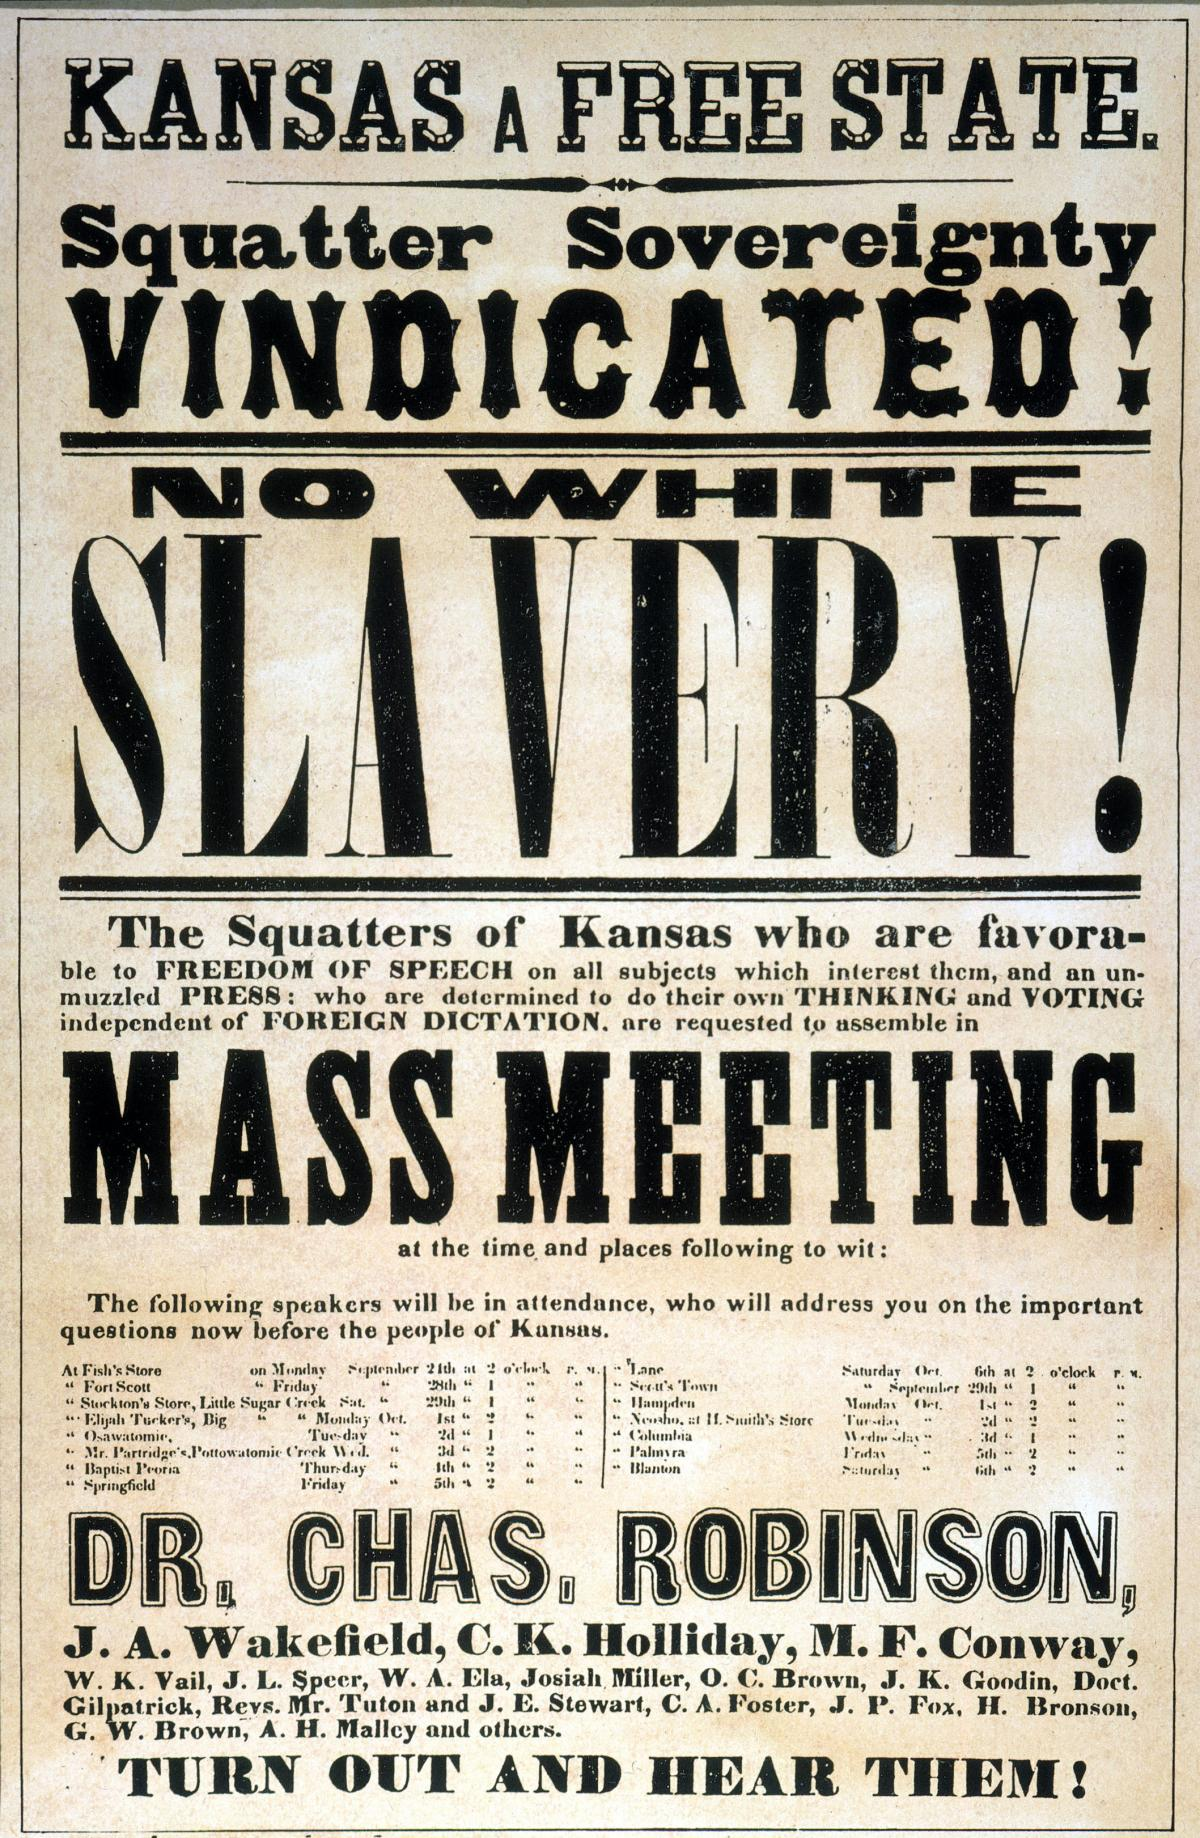 image of a poster advertising a meeting